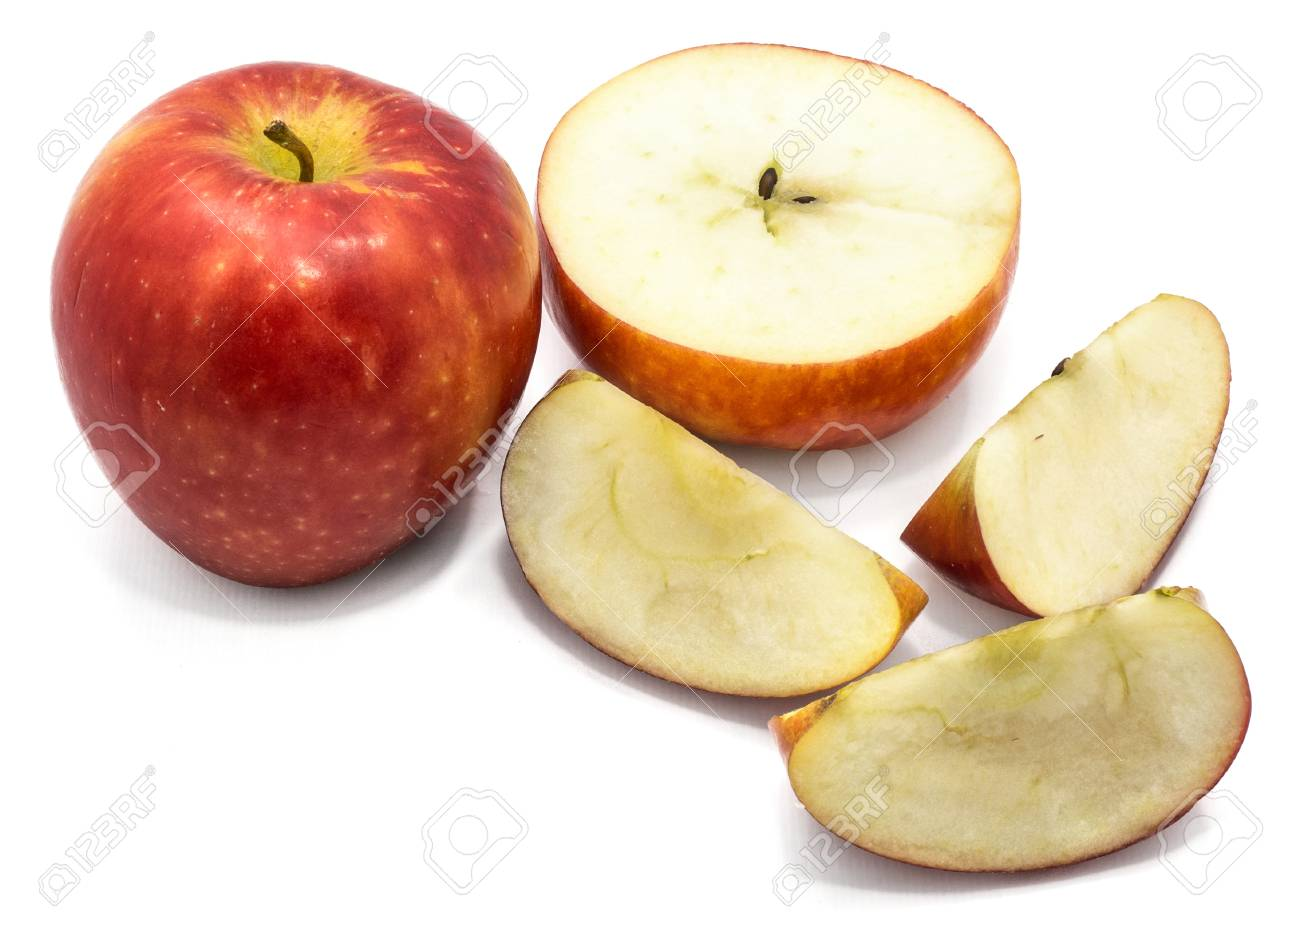 Sliced Apples Kanzi One Whole Cross Section Half Slices Isolated